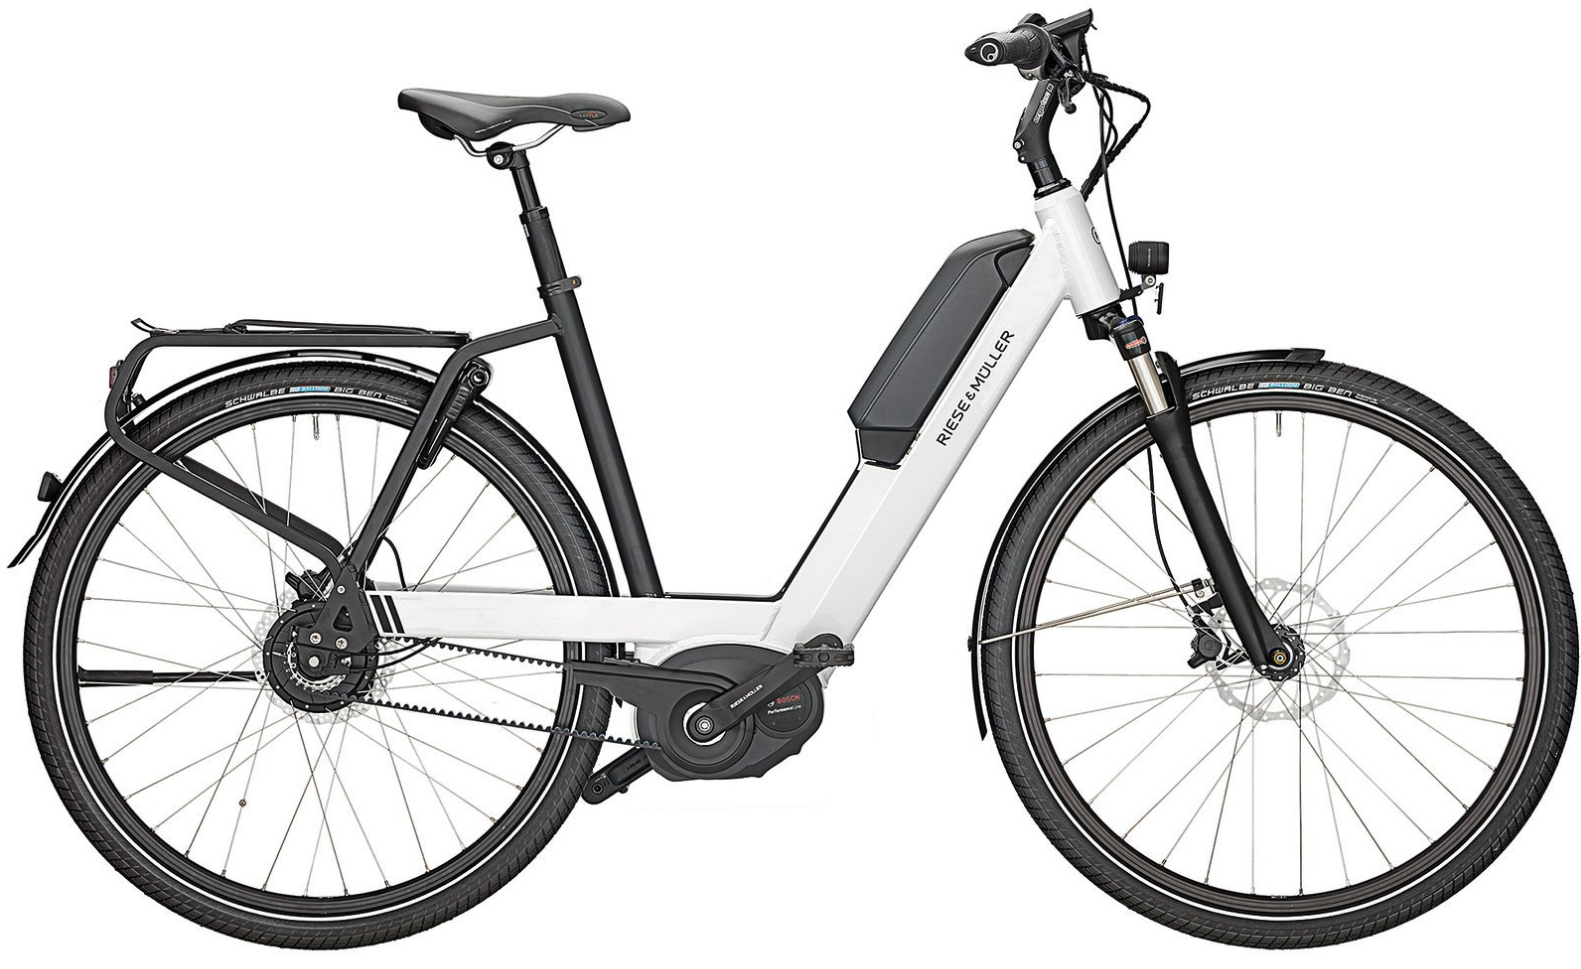 The Nevo uses an even more forward location to get more traction on the front wheel.